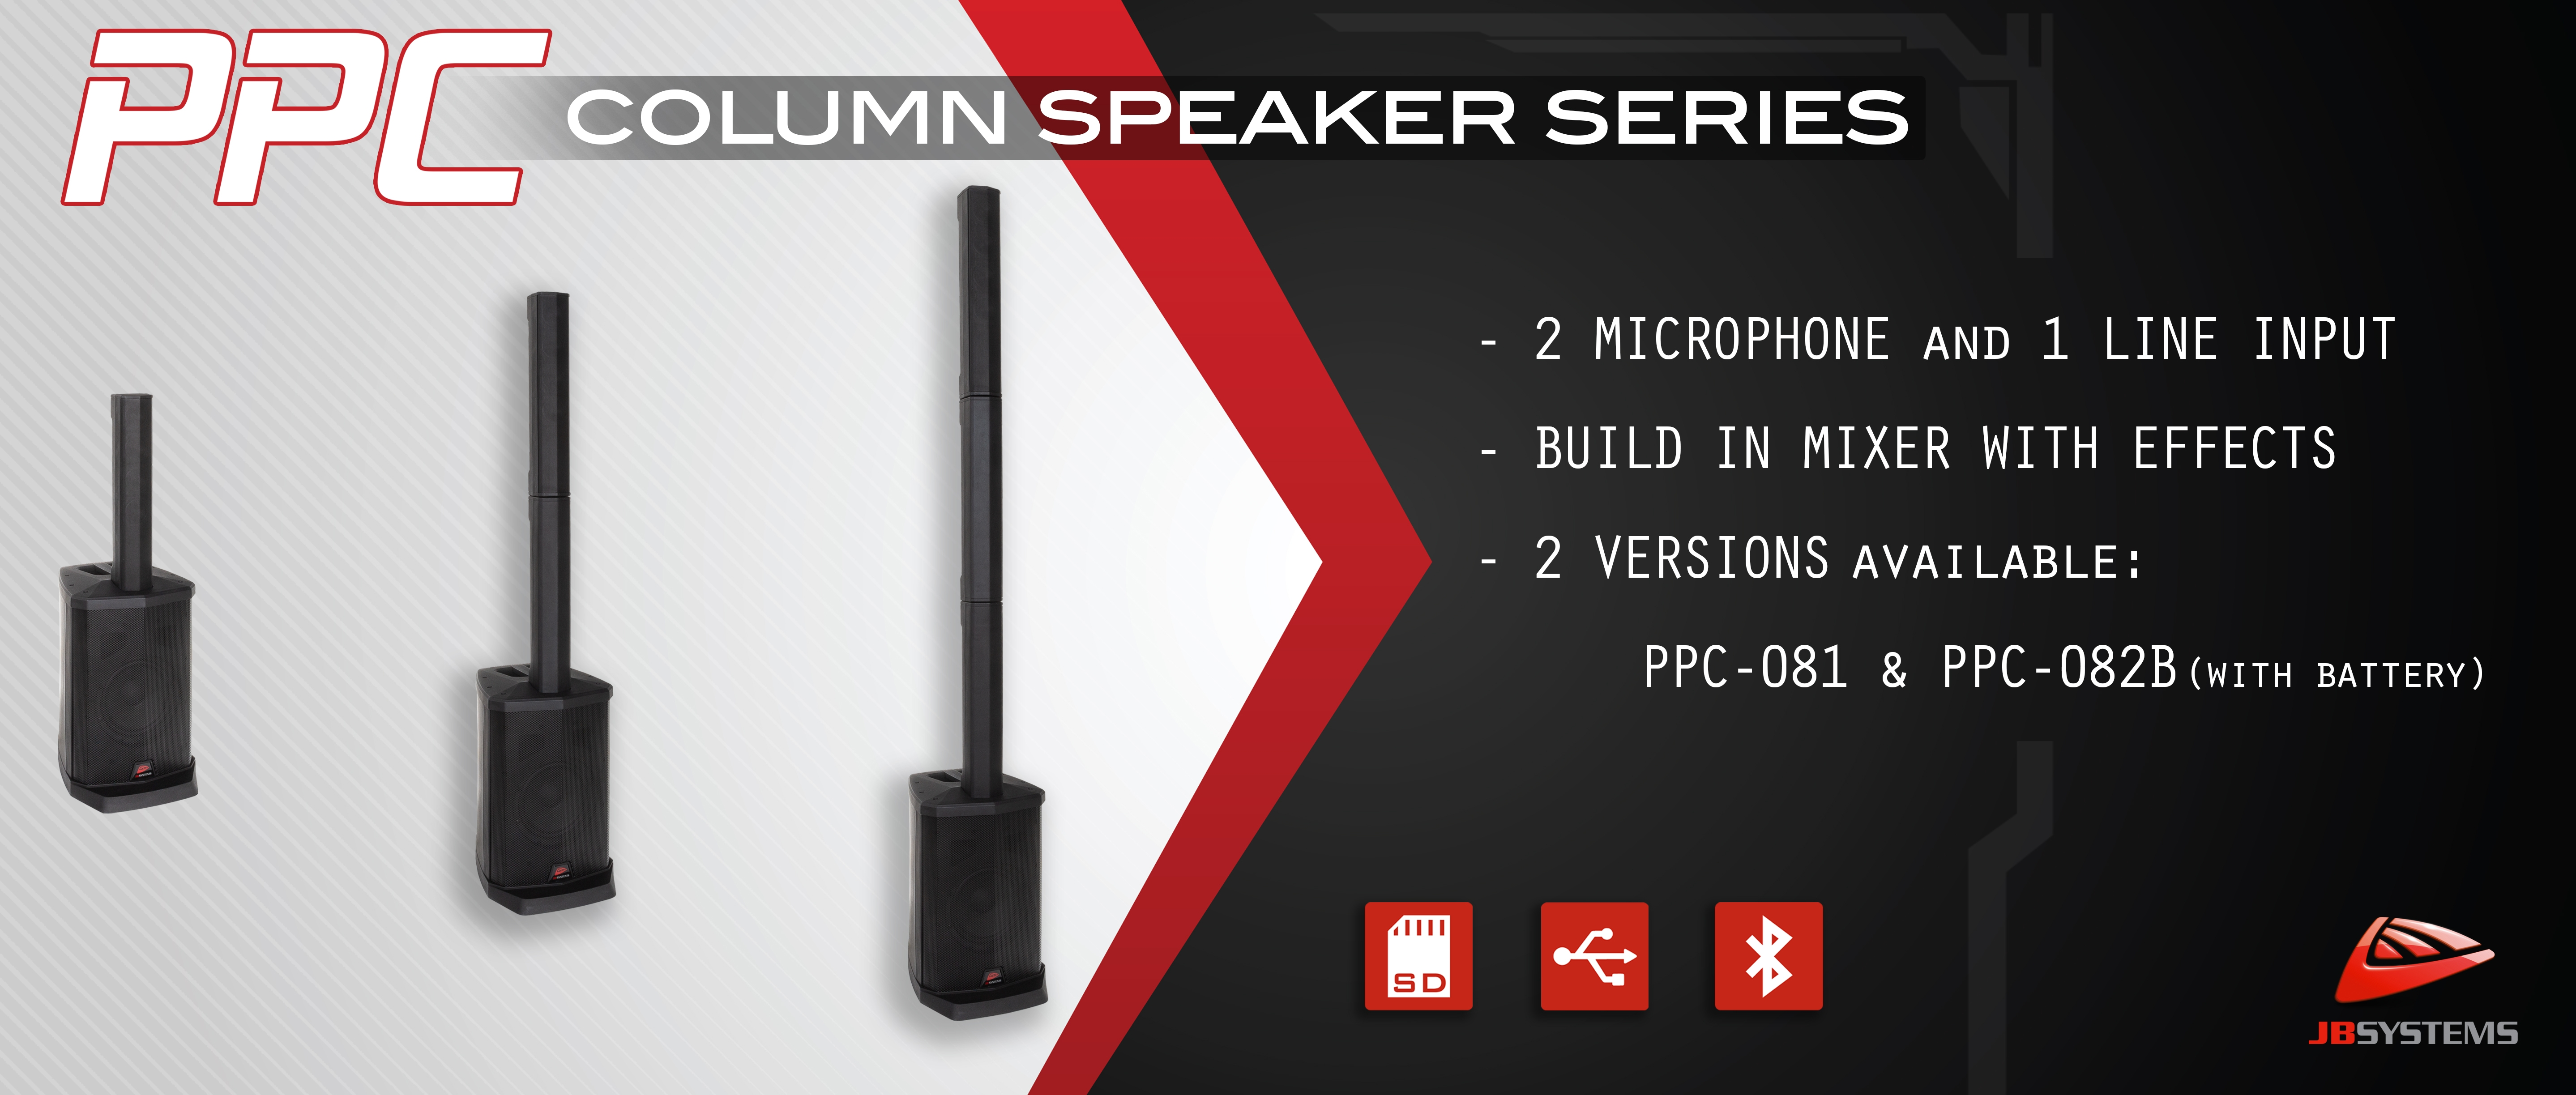 Discover our new portable column speaker series...